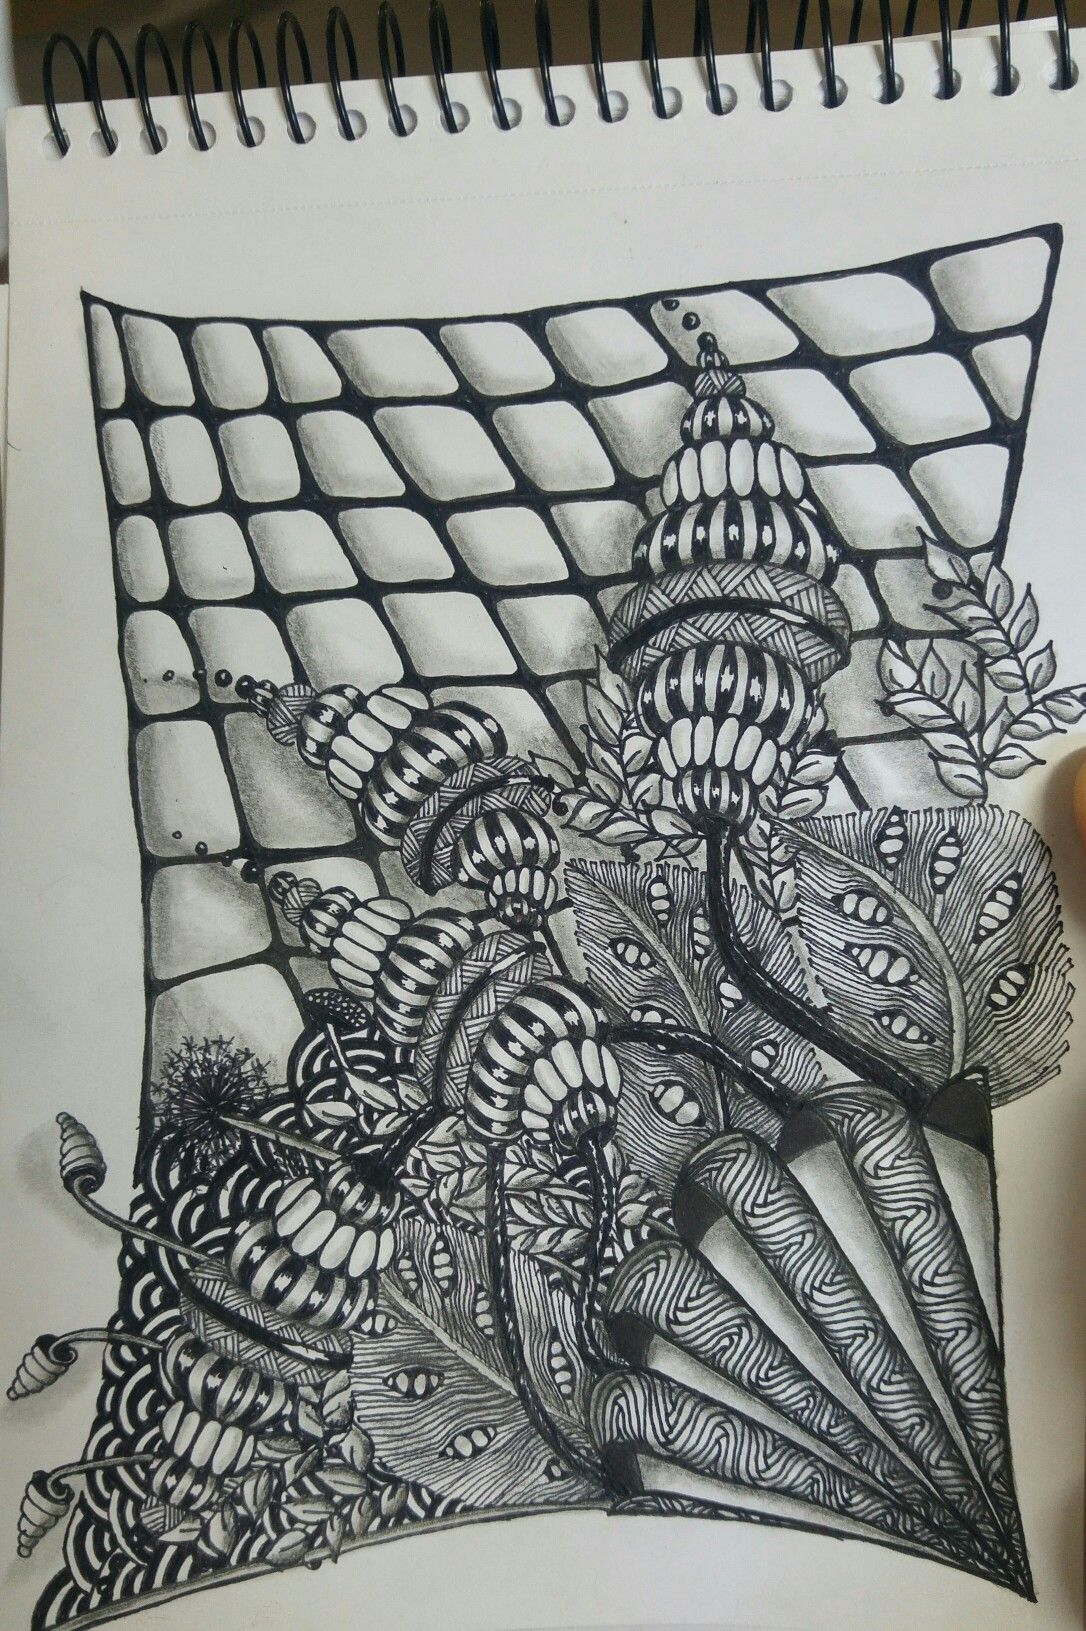 Pin by Kesem Zailer on wow | Pinterest | Zentangles, Tangled and Doodles